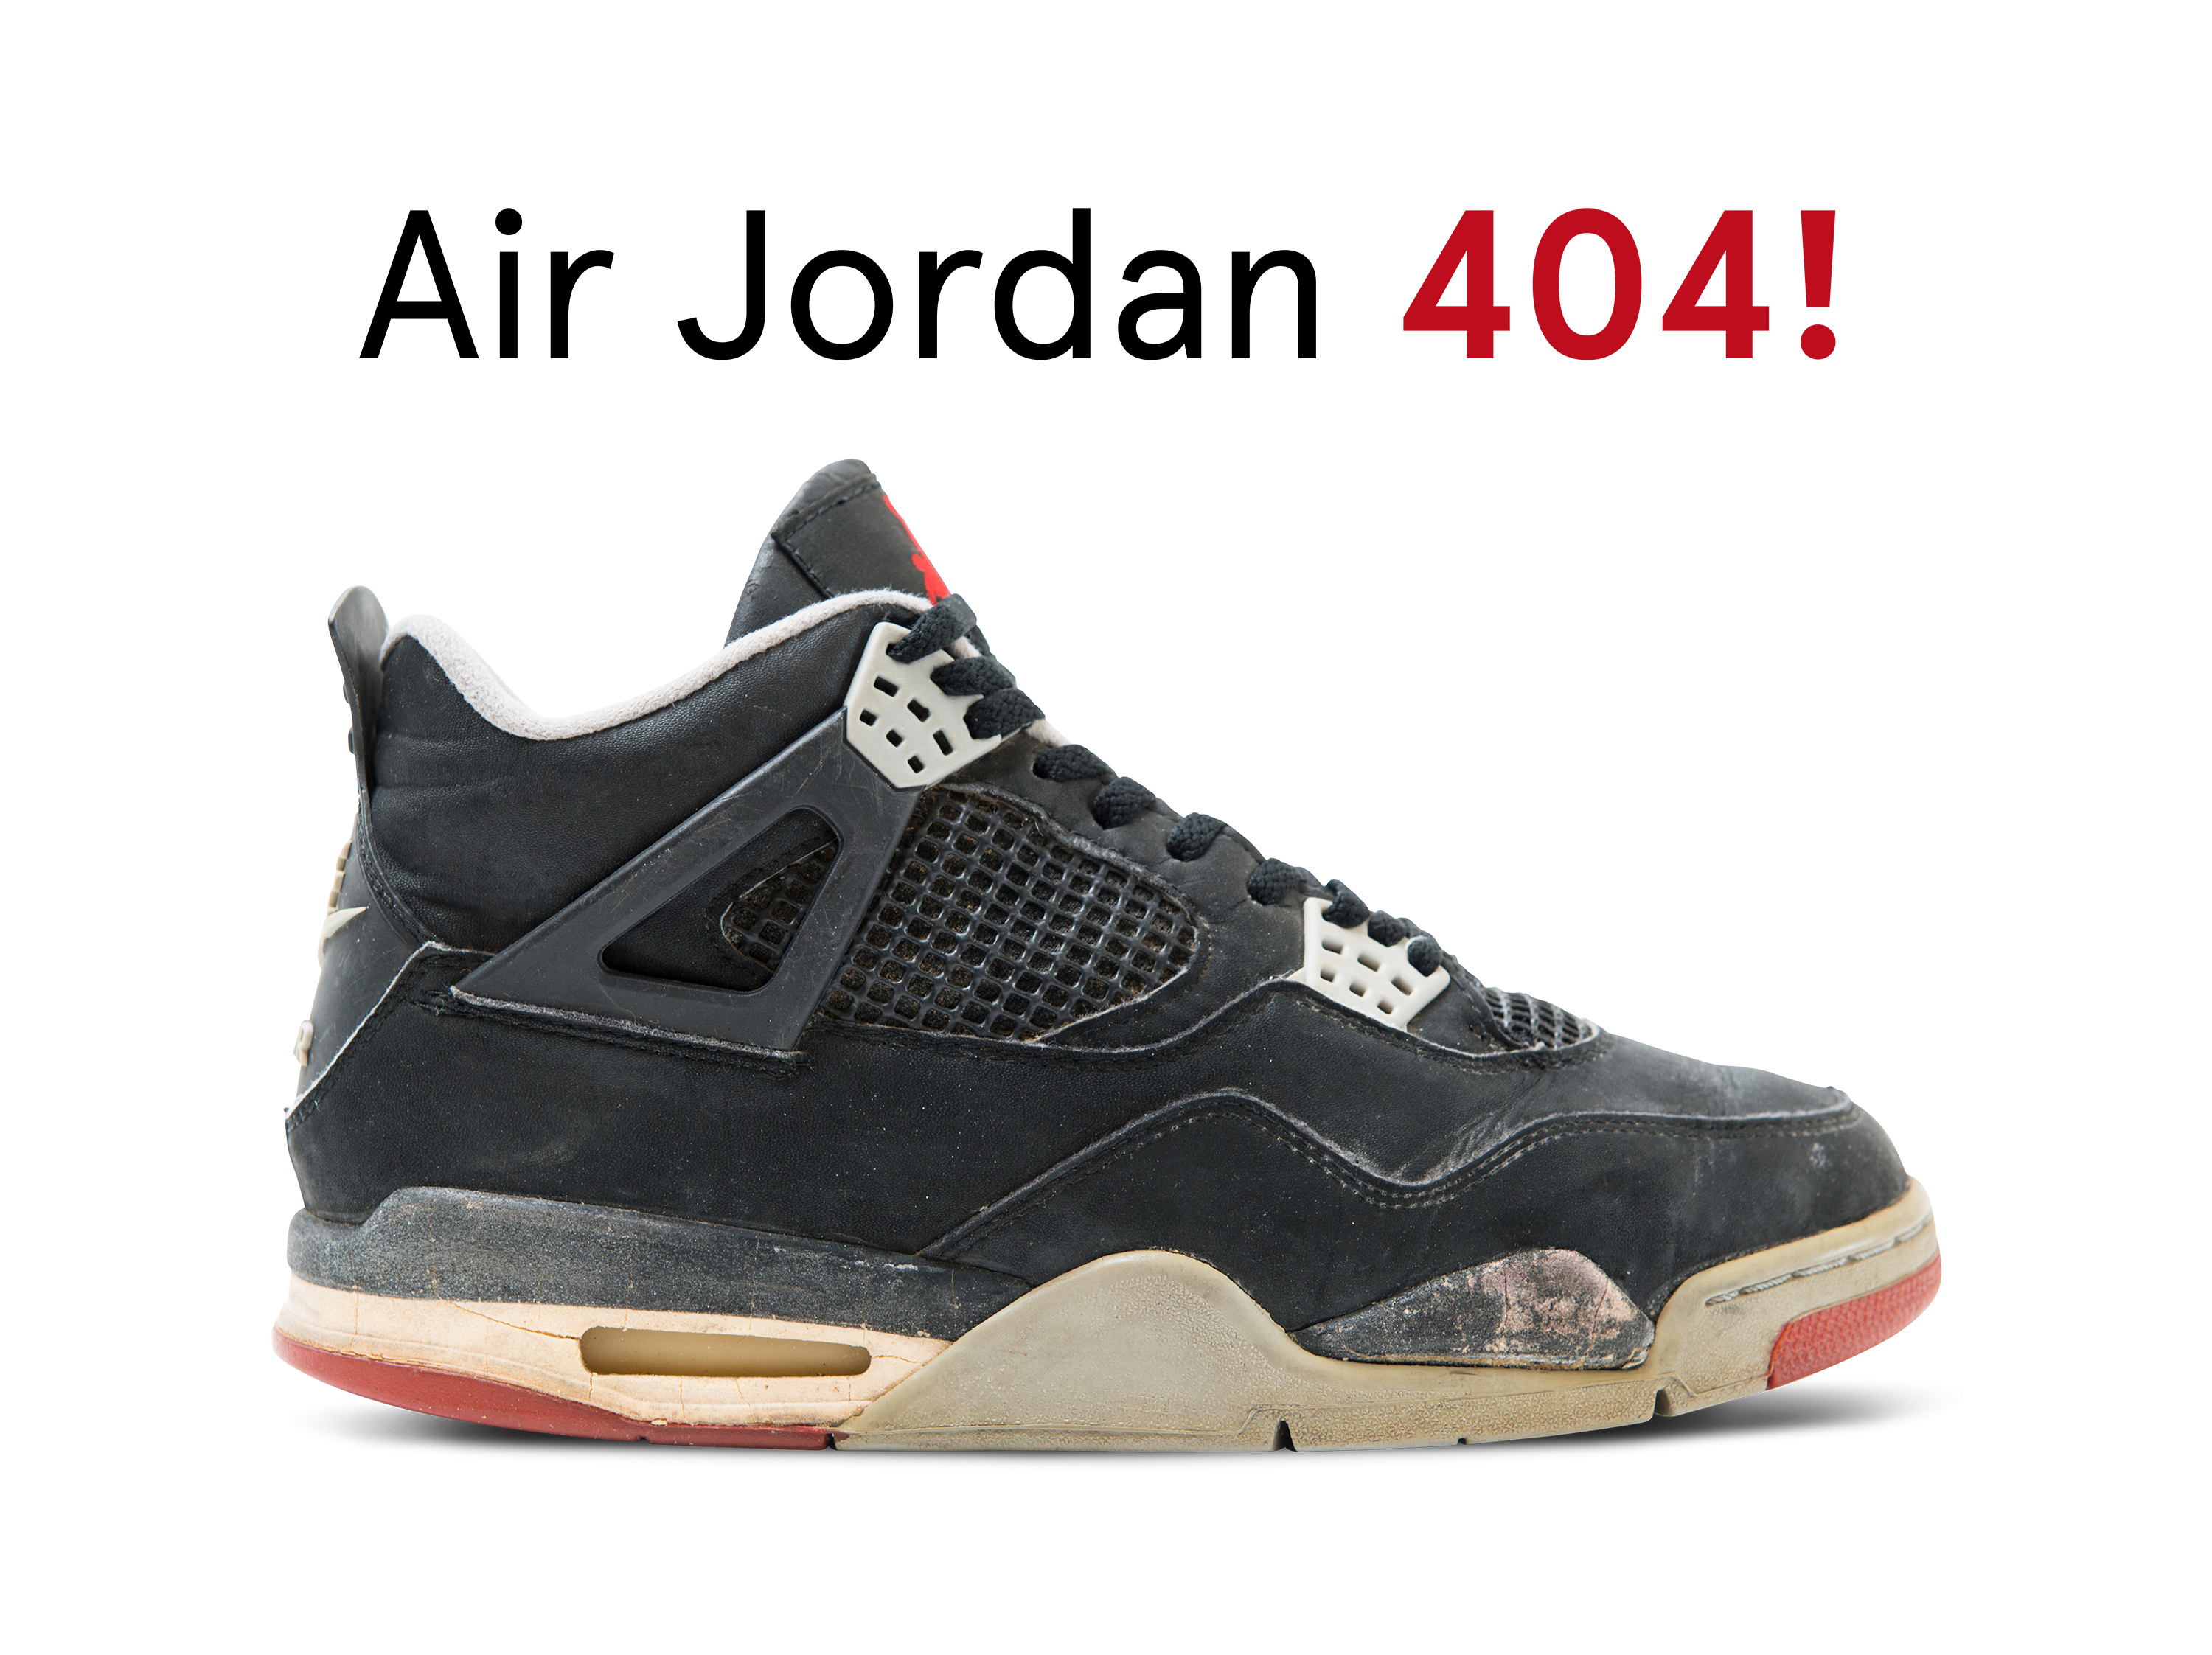 """An old shoe with the caption """"Air Jordan 404!"""""""